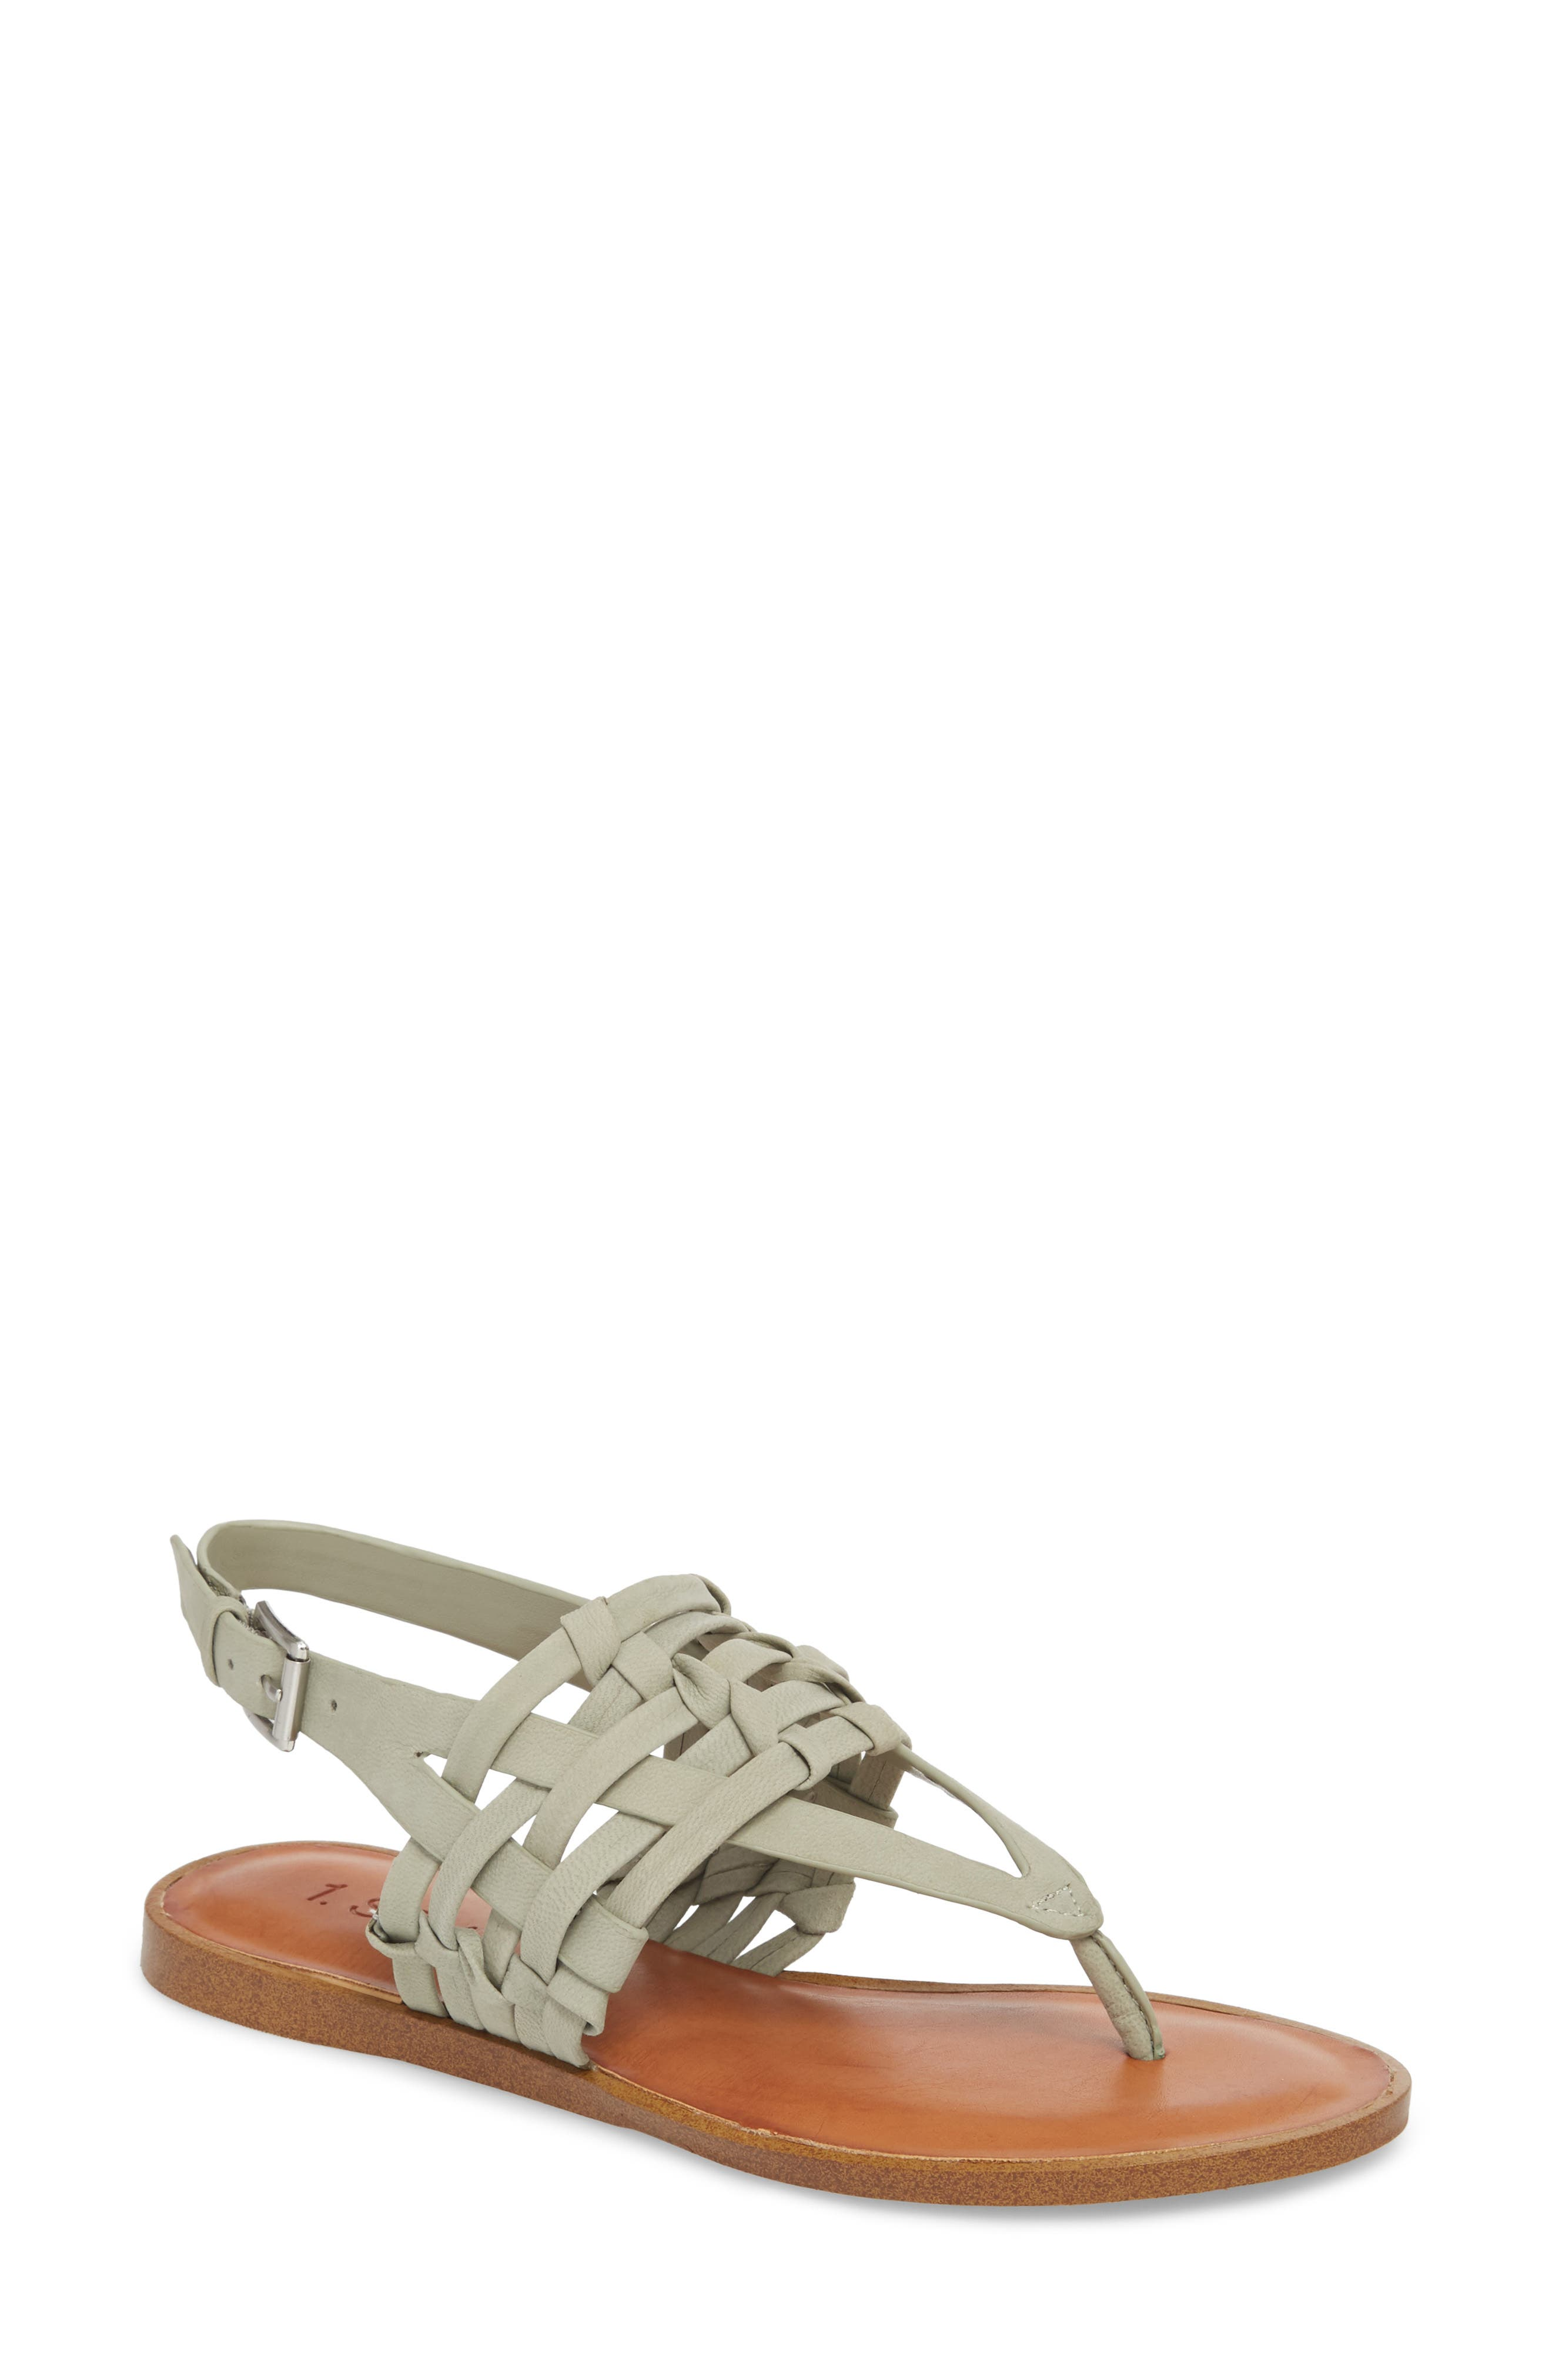 Lenn Sandal,                         Main,                         color, Nettle Nubuck Leather